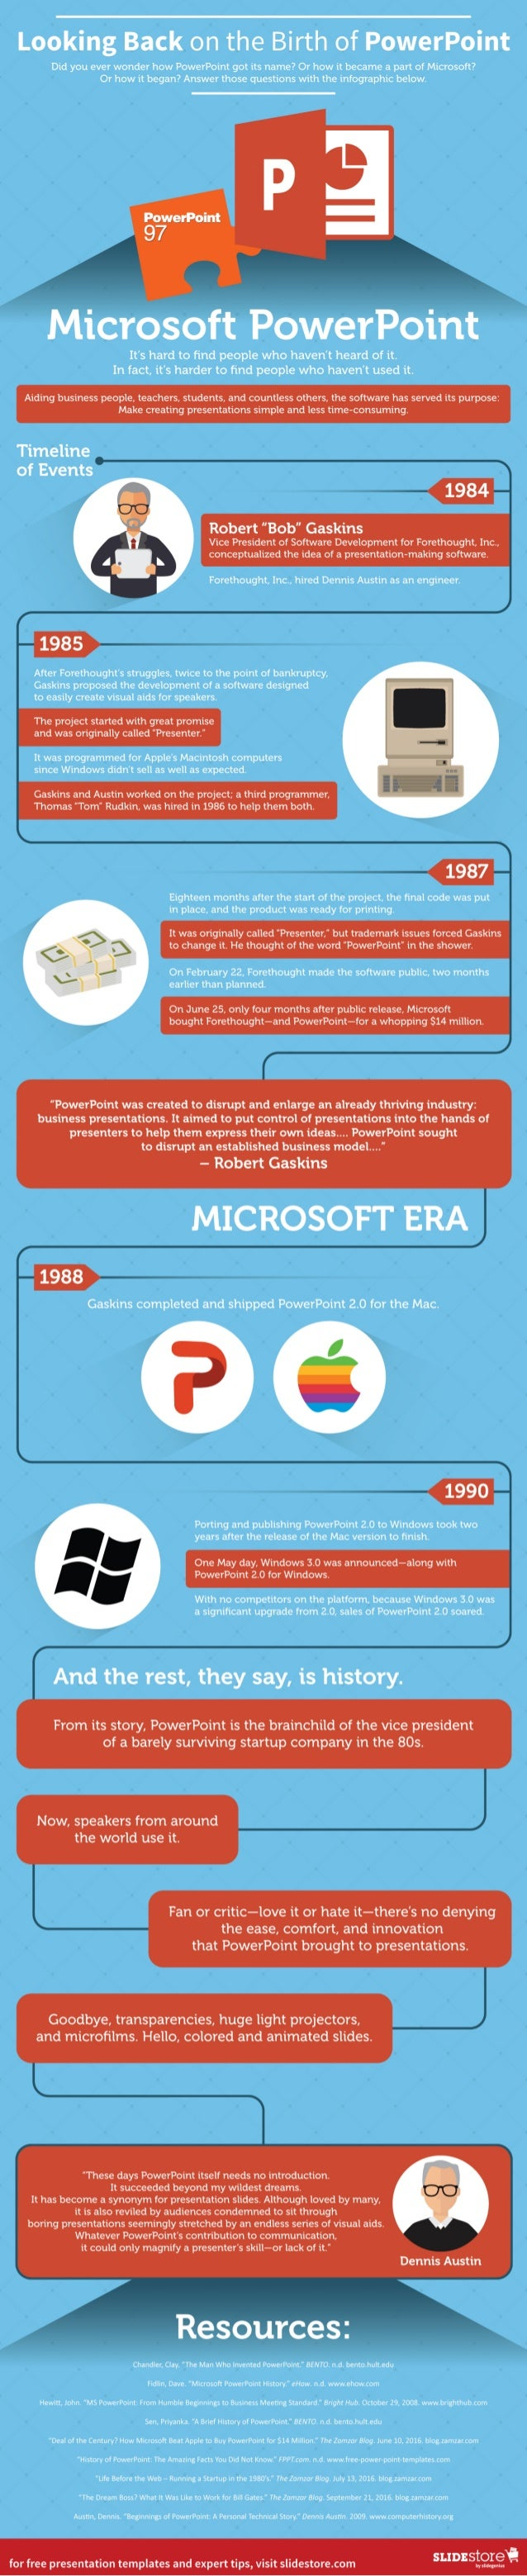 Looking Back on the Birth of PowerPoint